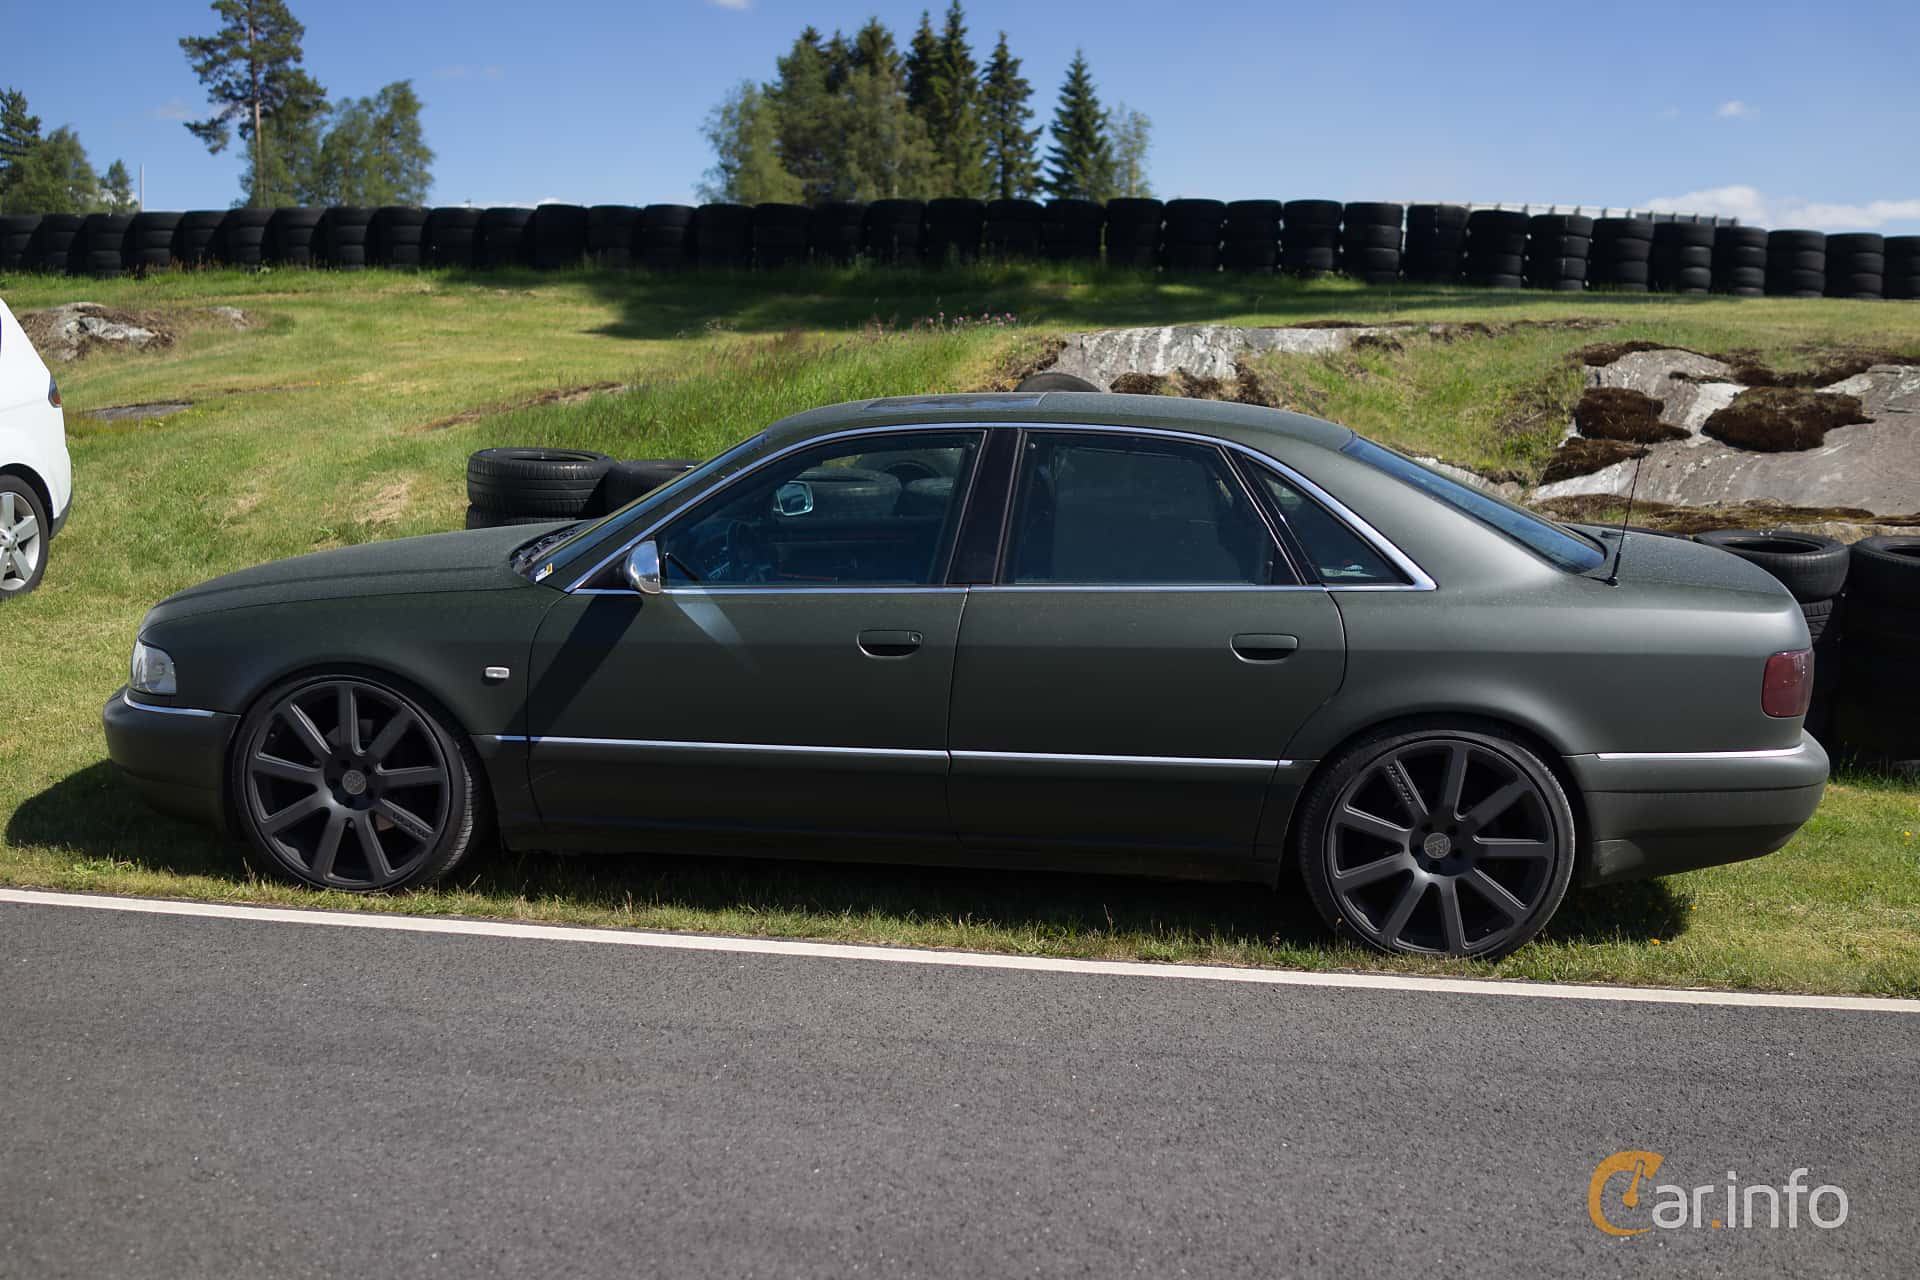 Audi A8 2.5 TDI V6 Manual, 150hp, 1997 at Gatebil Rudskogen juli 2015